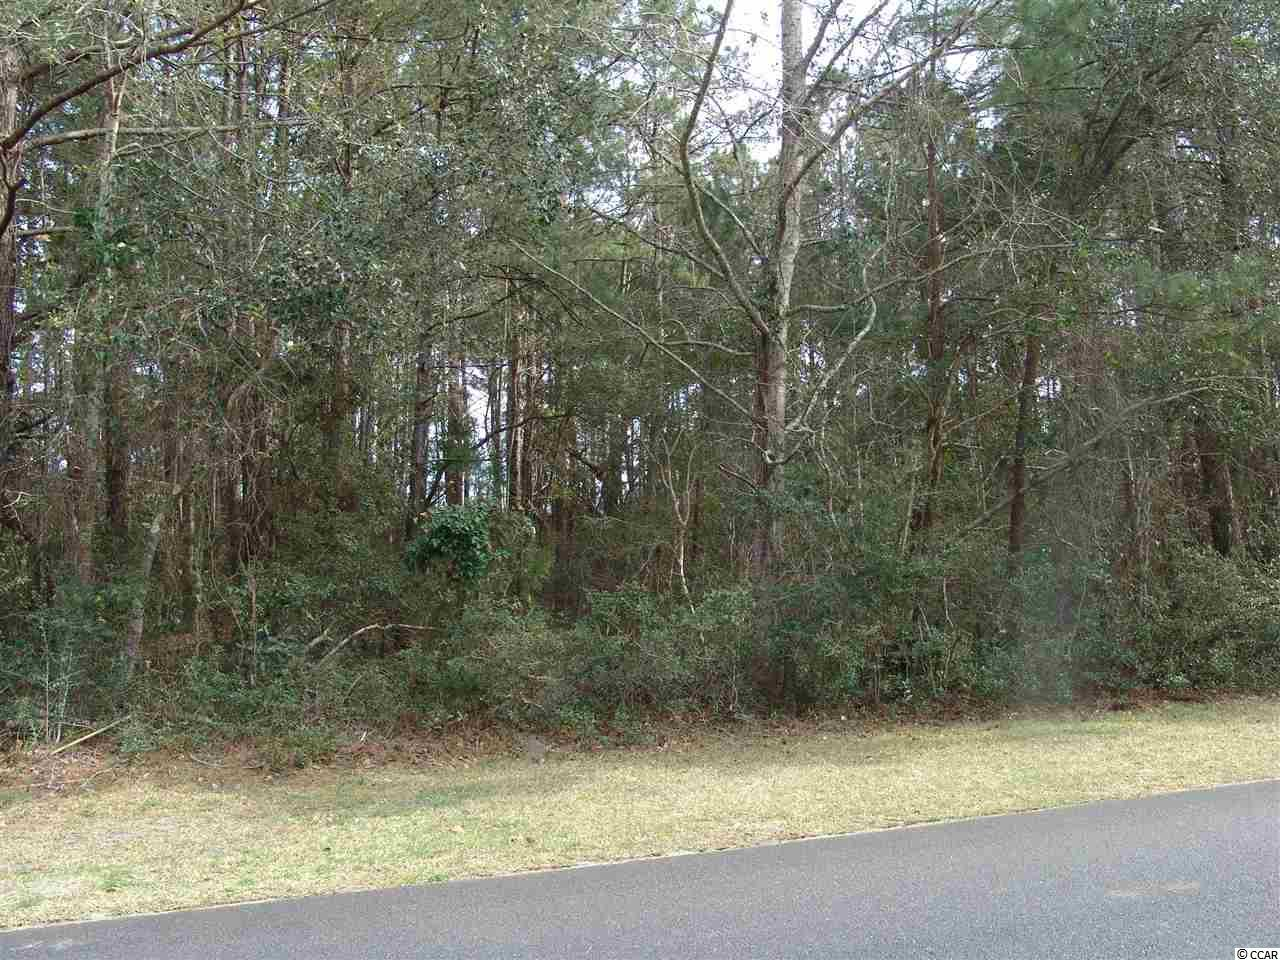 Lot 293 located on Bonneyneck Drive is a large homesite, .64 acre, located on the 10th fairway of the Pete Dye designed golf course at DeBordieu.  A wonderful wooded lot in an ideal location.  The main club house, the tennis/exercise facitliy, the beach are all within a walking, bike, or golf course ride.  The beach club offers casual dining in the bar area and also fine dining for those who prefer the formal setting.  Overlooking the Atlantic, one can enjoy spectacular view of the sunrise and sunset.  The Gazebo offers a relaxing social area and the two pools that members have access provides relaxing poolside areas for the family and friends to enjoy.  The club members aslo have access to the Pavilion where numerous social gathering are planned for residents of DeBordieu.  All the amenities one could want are right here in DeBordieu for one to enjoy.  Golf, tennis, swimming pools, fishing in the North Inlet, social dinning and fine dining all provide an arena for one to enjoy.  If you're looking for a home, consider DeBordieu!!!! You won't be sorry...It's a vacation paradise!!!!